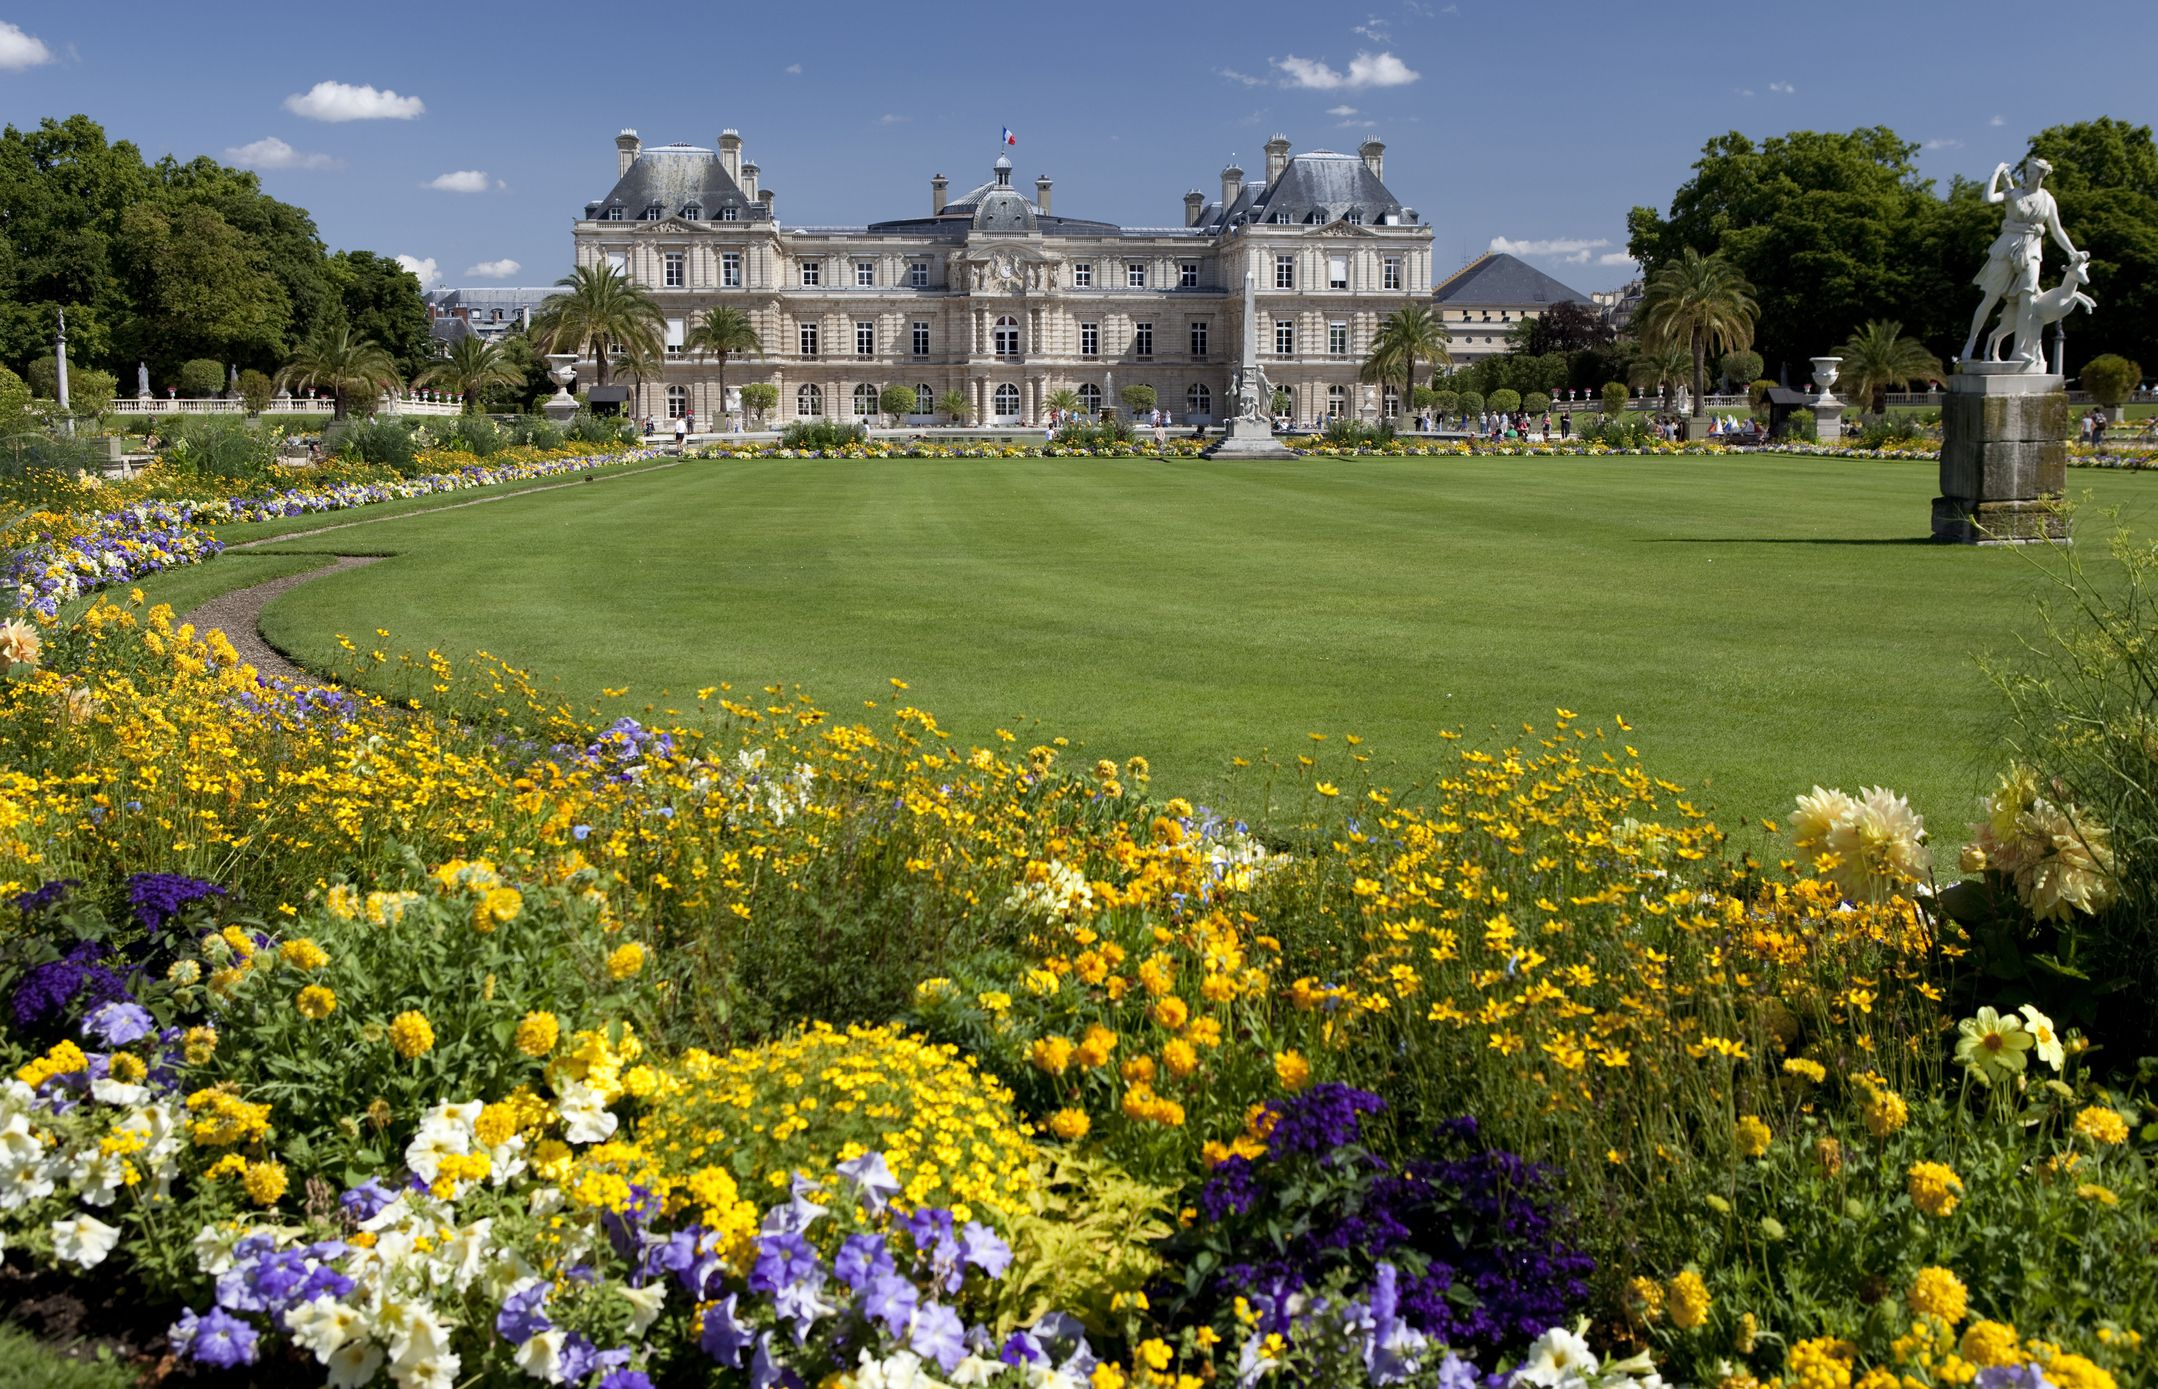 Jardin Du Kohistan Luxe Visitor S Guide to the Luxembourg Gardens In Paris Of 80 Frais Jardin Du Kohistan